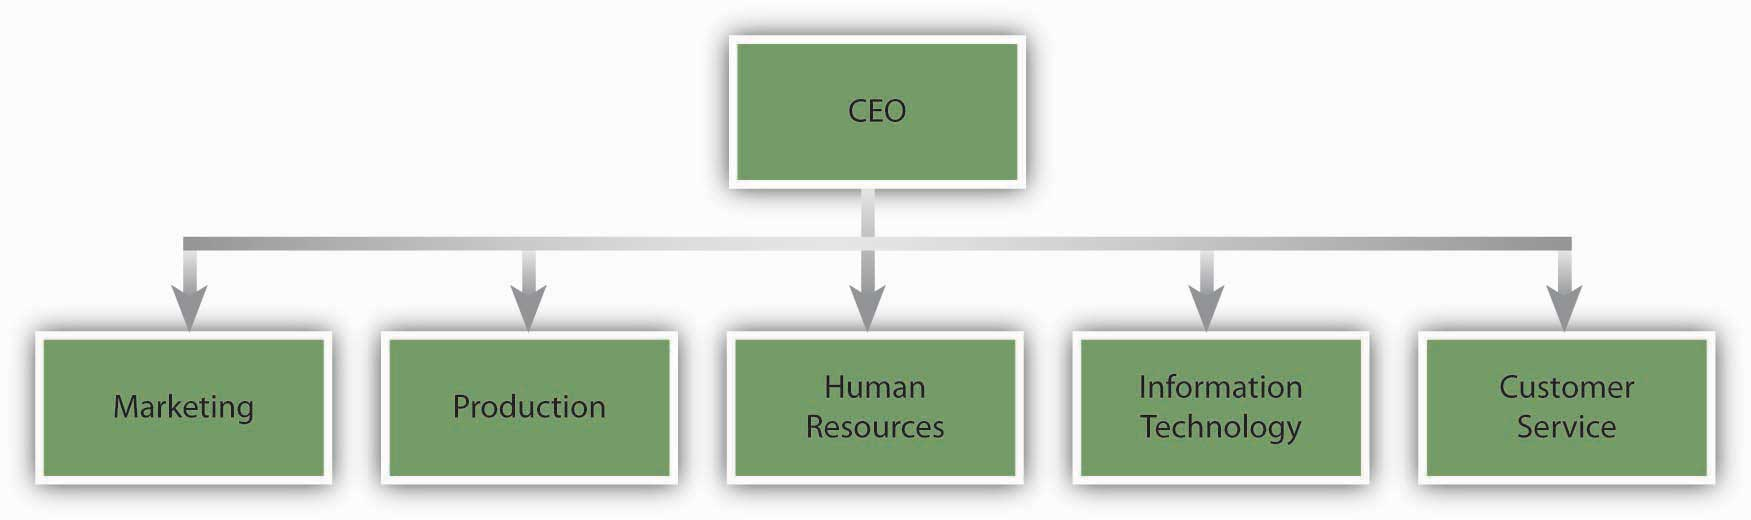 Organizational Structure Principles Of Management